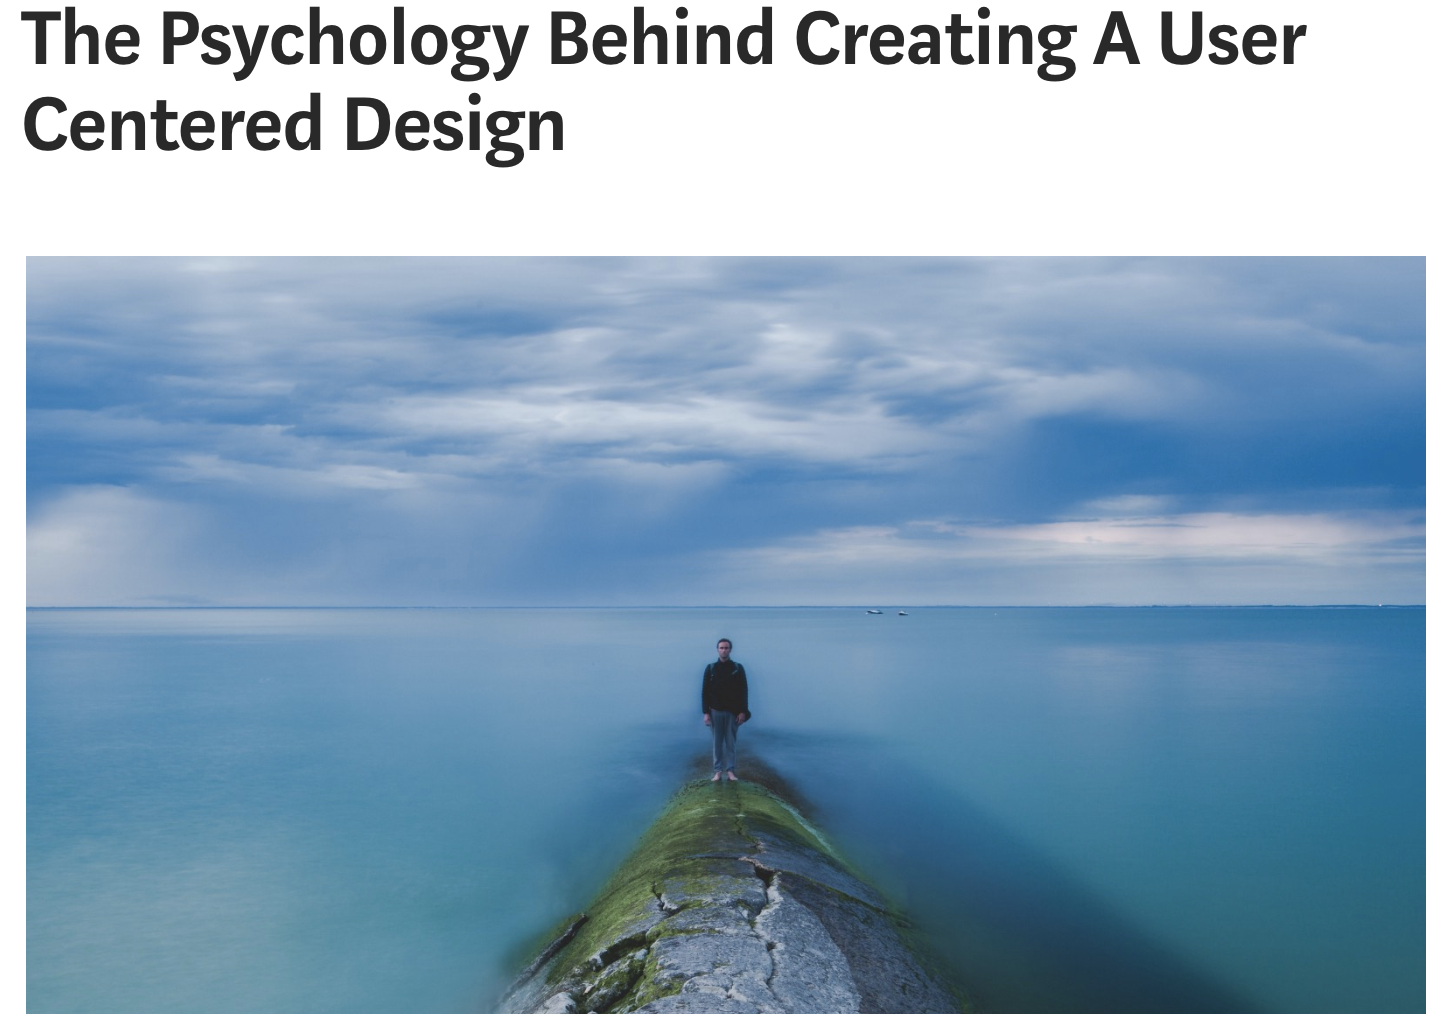 The Psychology Behind Creating A User Centered Design